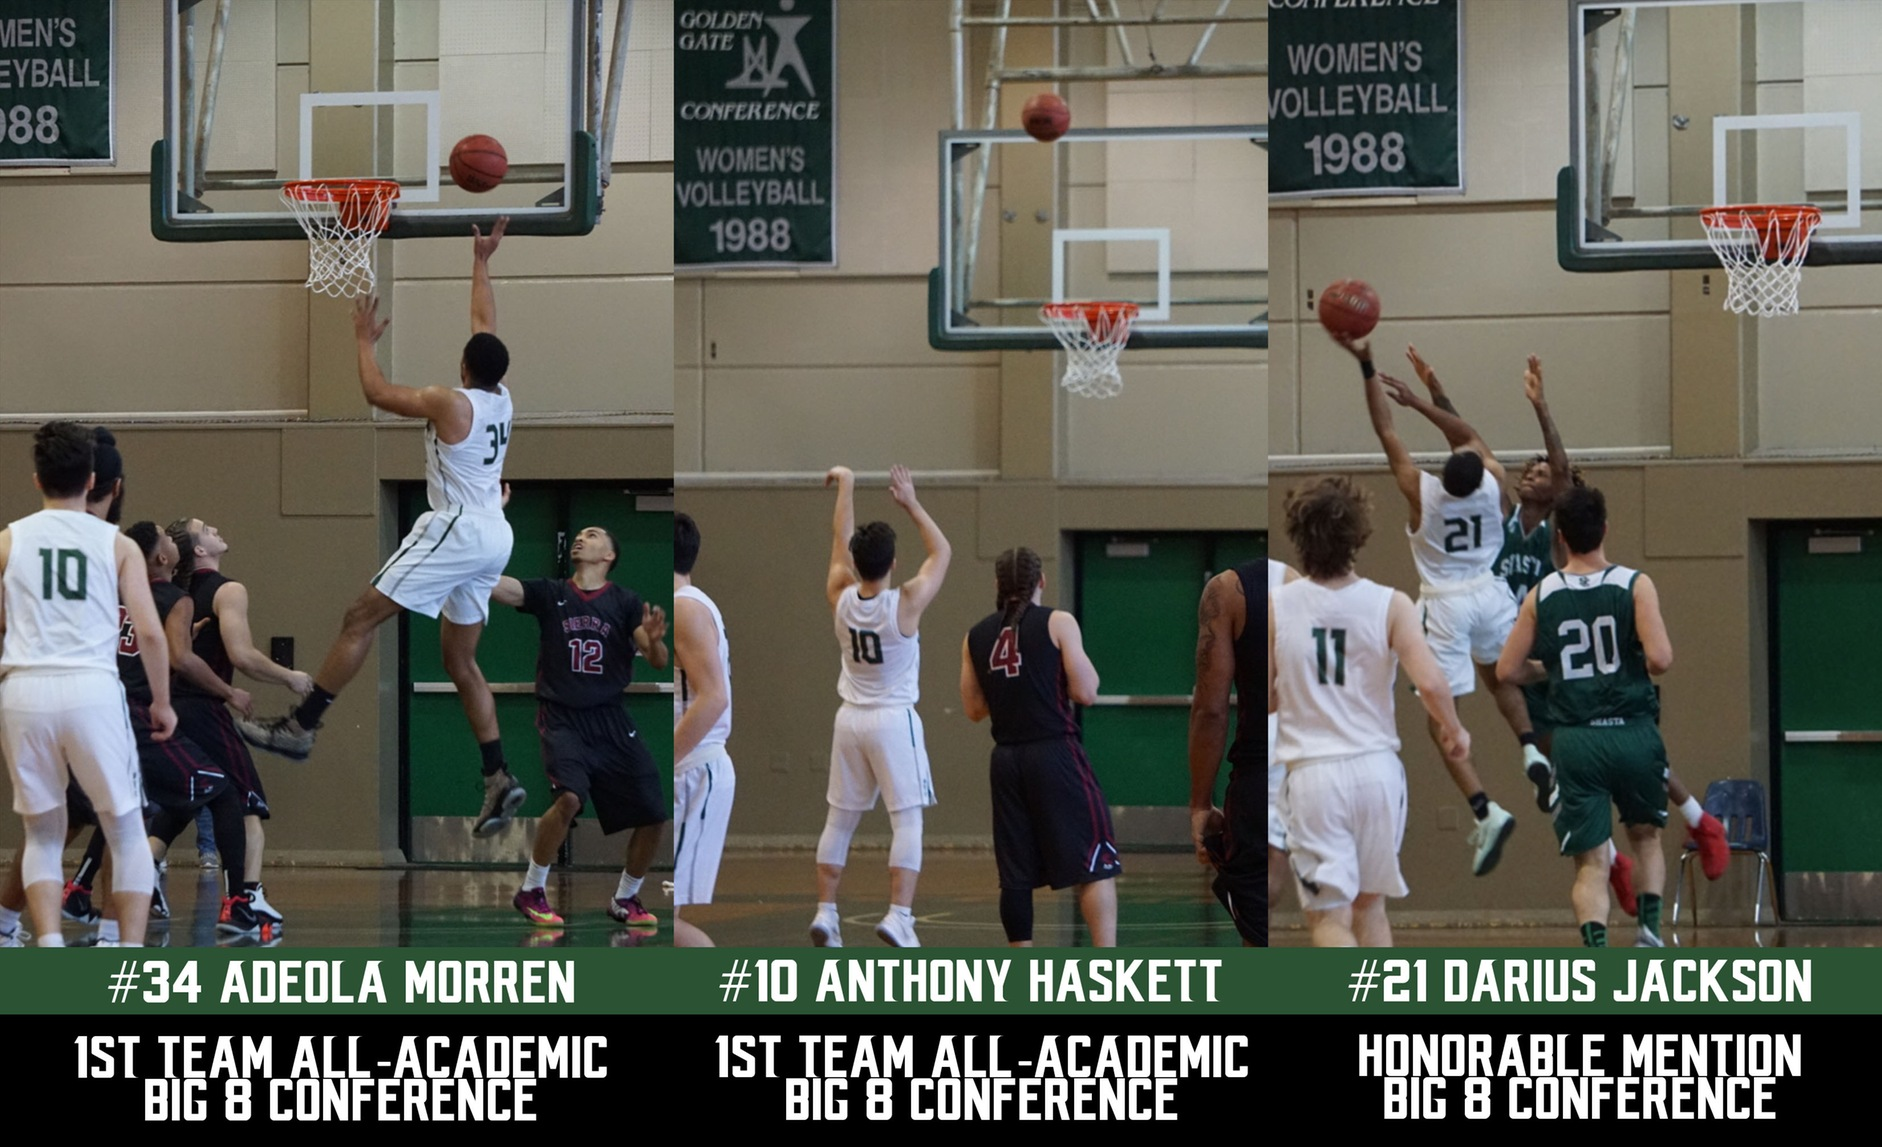 3 Men's Basketball players named to Big 8 Conference Teams